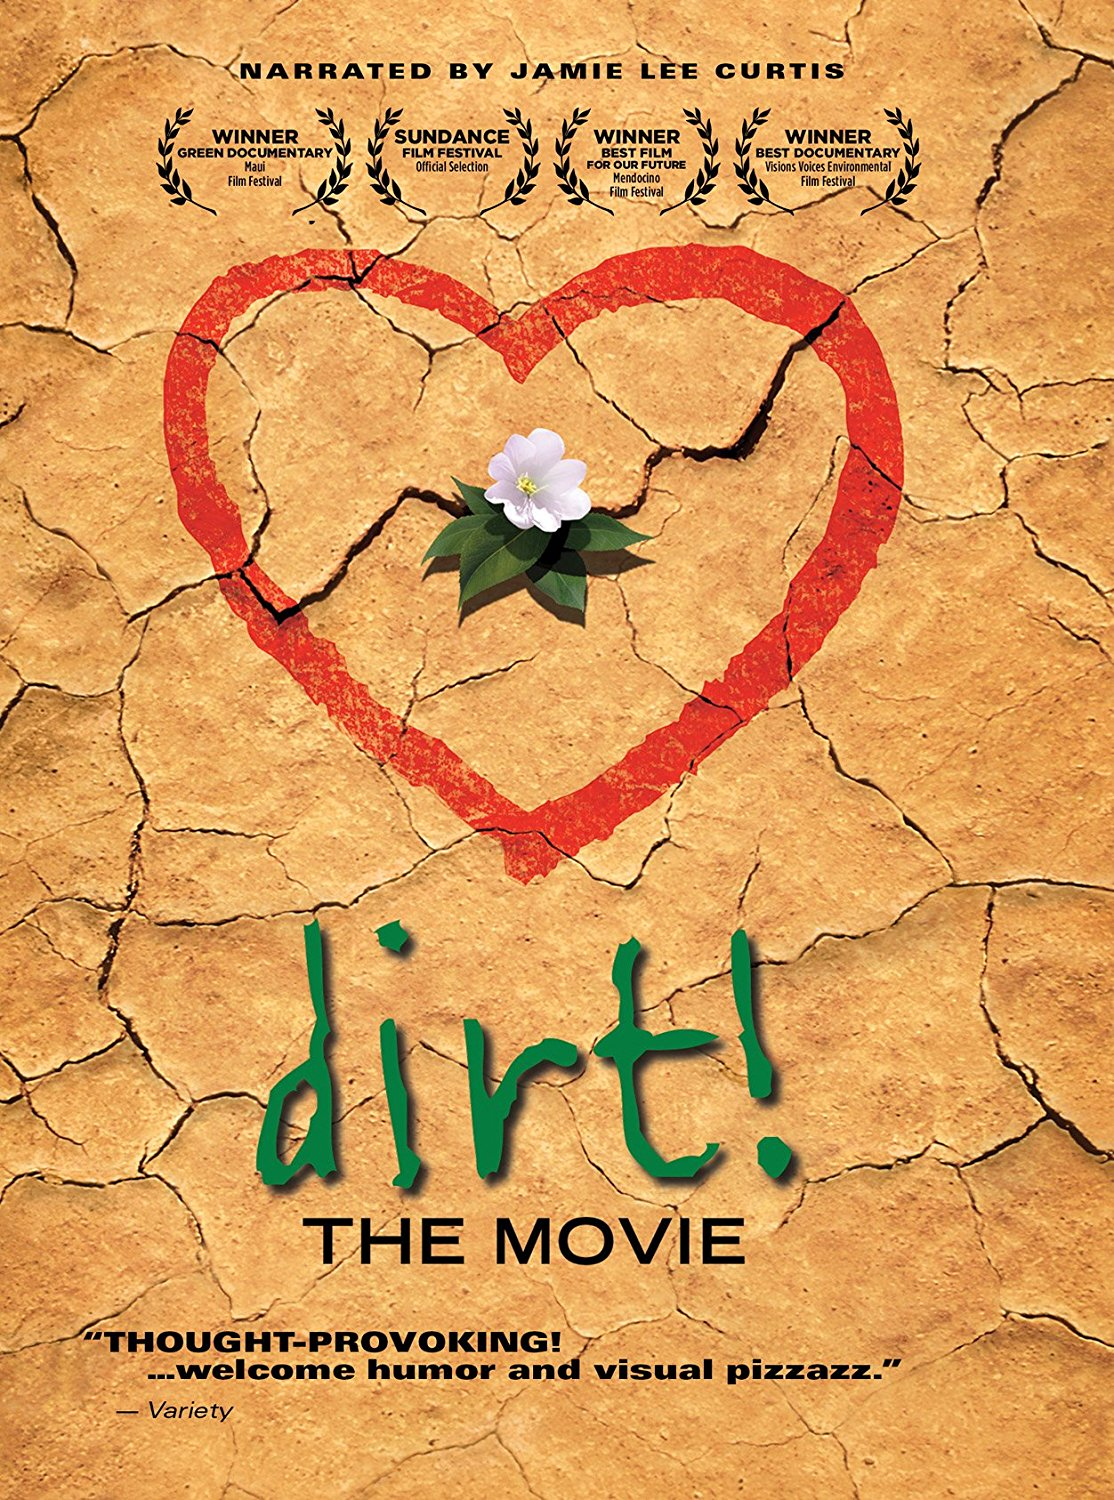 DIRT! THE MOVIE – A LAST MINUTE CHRISTMAS GIFT